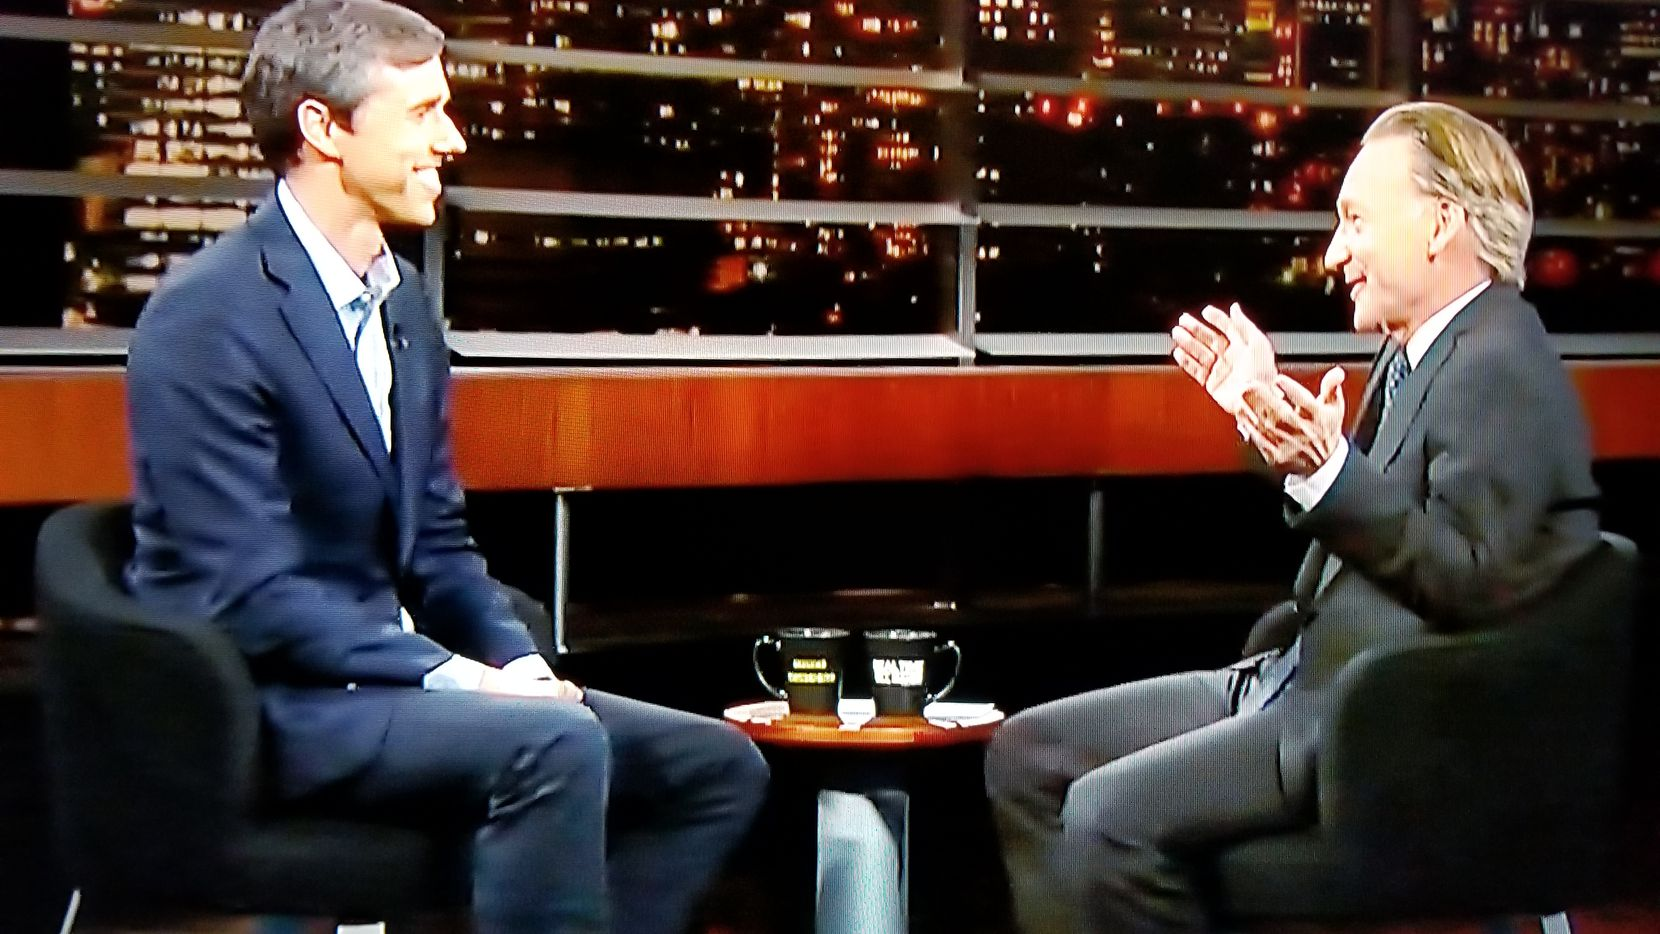 El Paso Rep. Beto O'Rourke, the Democrat challenging Texas Sen. Ted Cruz for his Senate seat this fall, appeared on Real Time with Bill Maher on Friday.